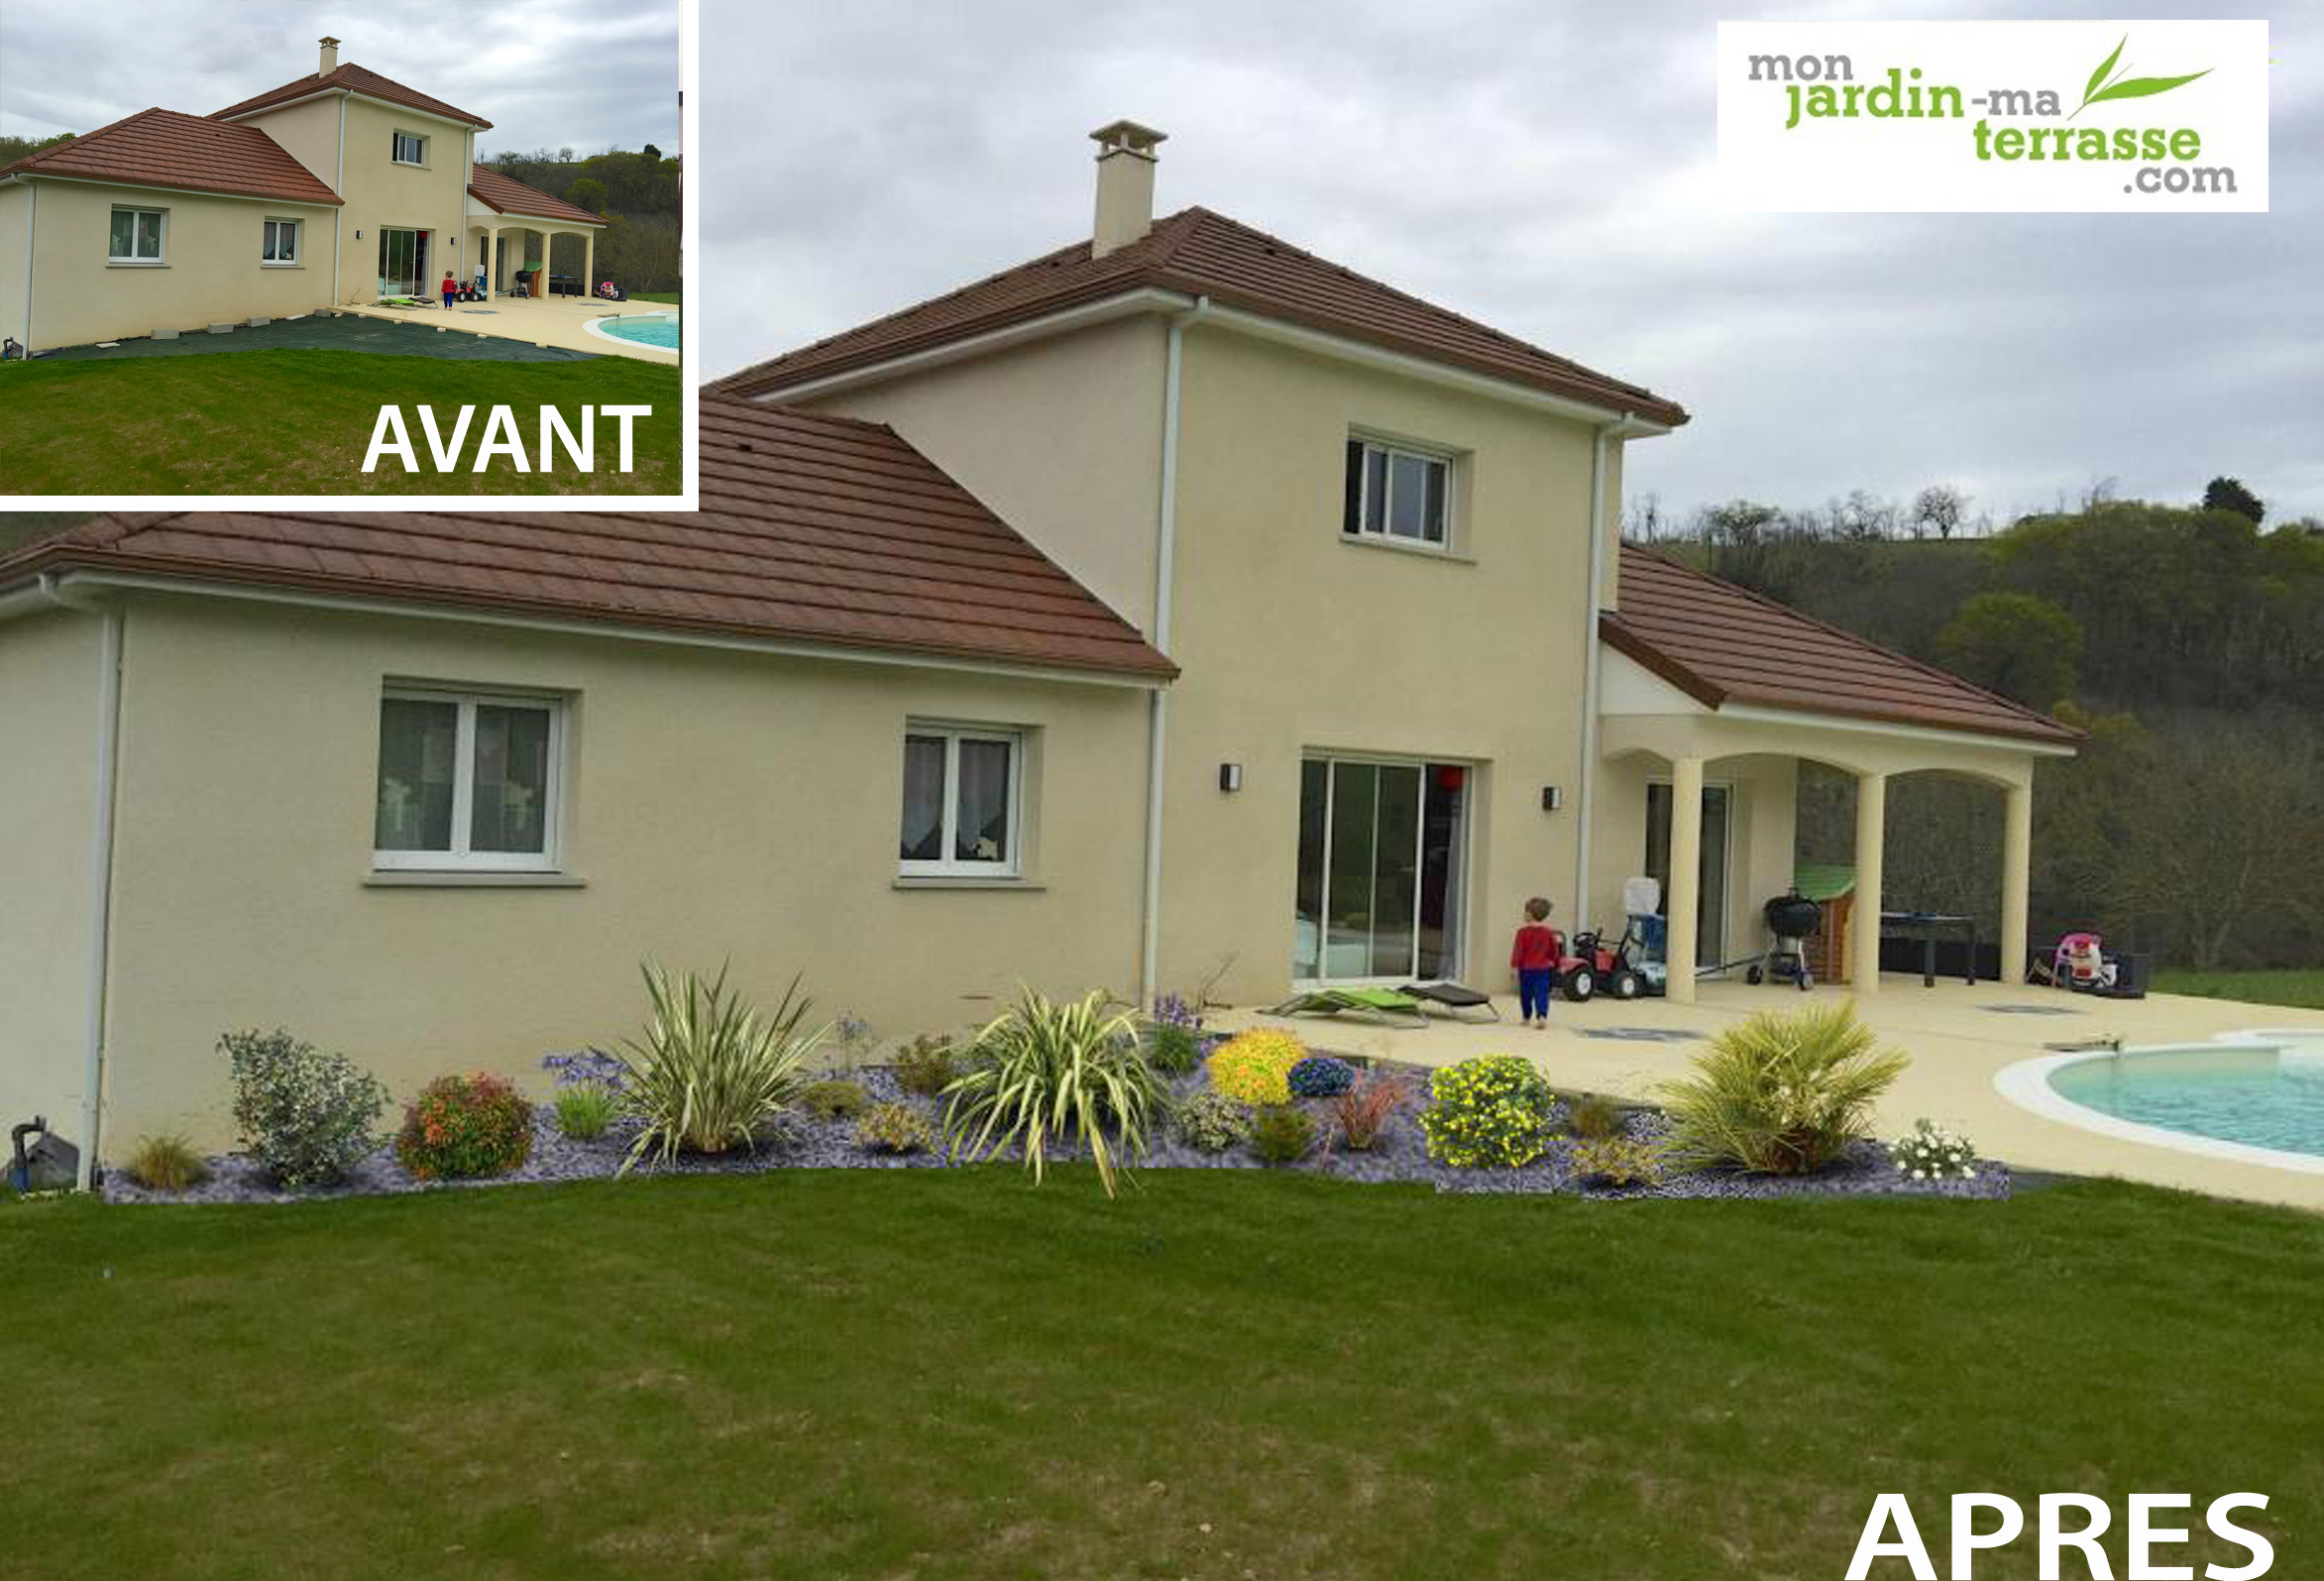 Am nagement ext rieur devant une maison monjardin for Amenagement exterieur maison